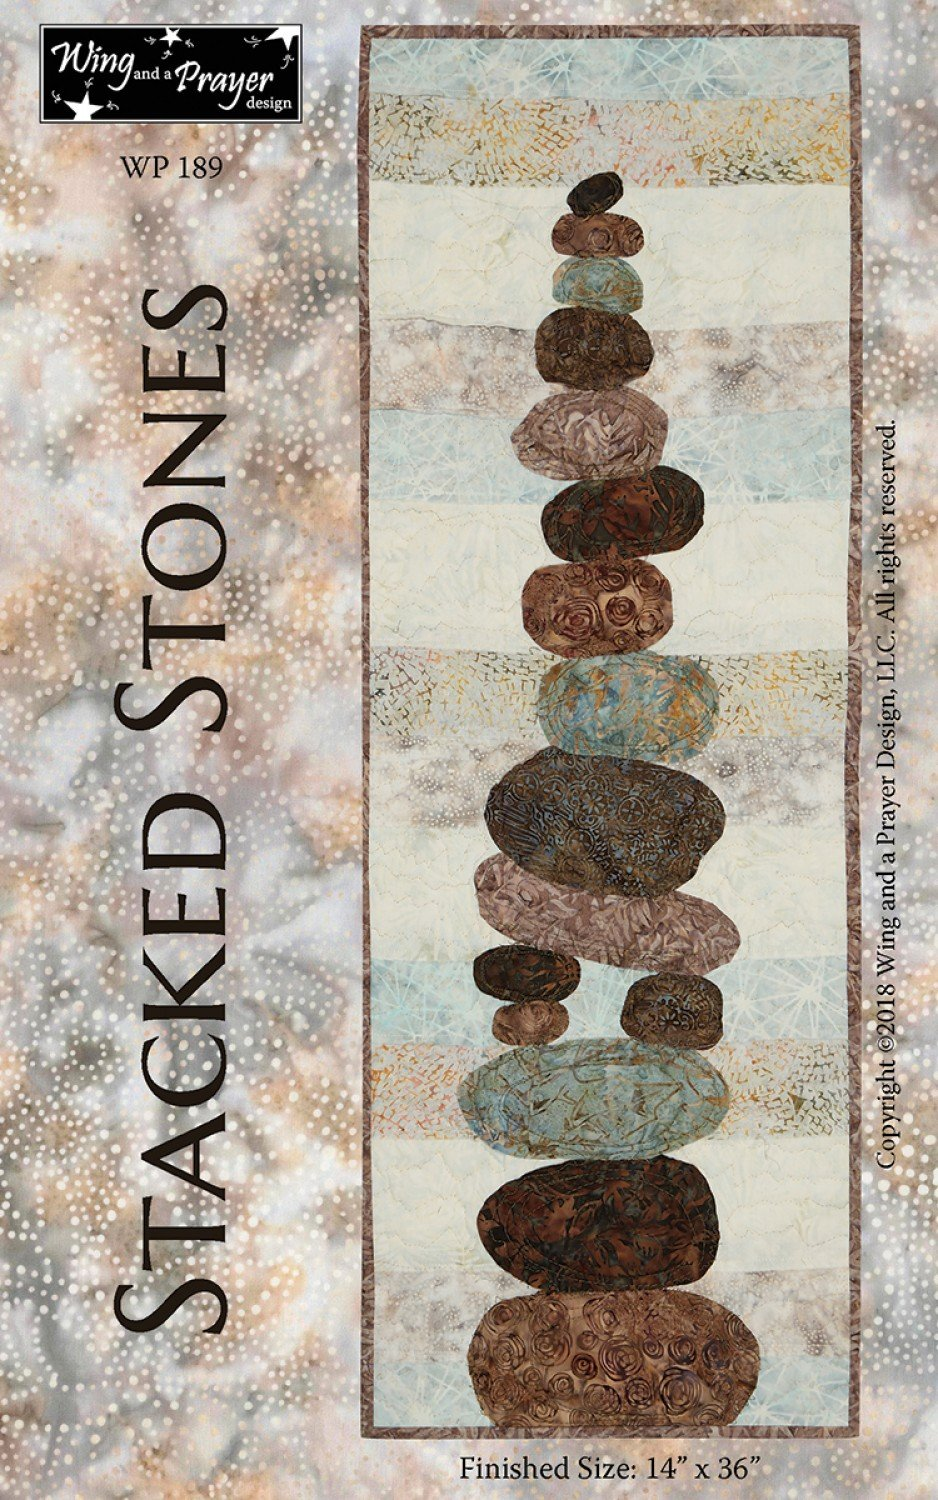 Stacked Stones Wall Hanging Pattern by Wing and a Prayer